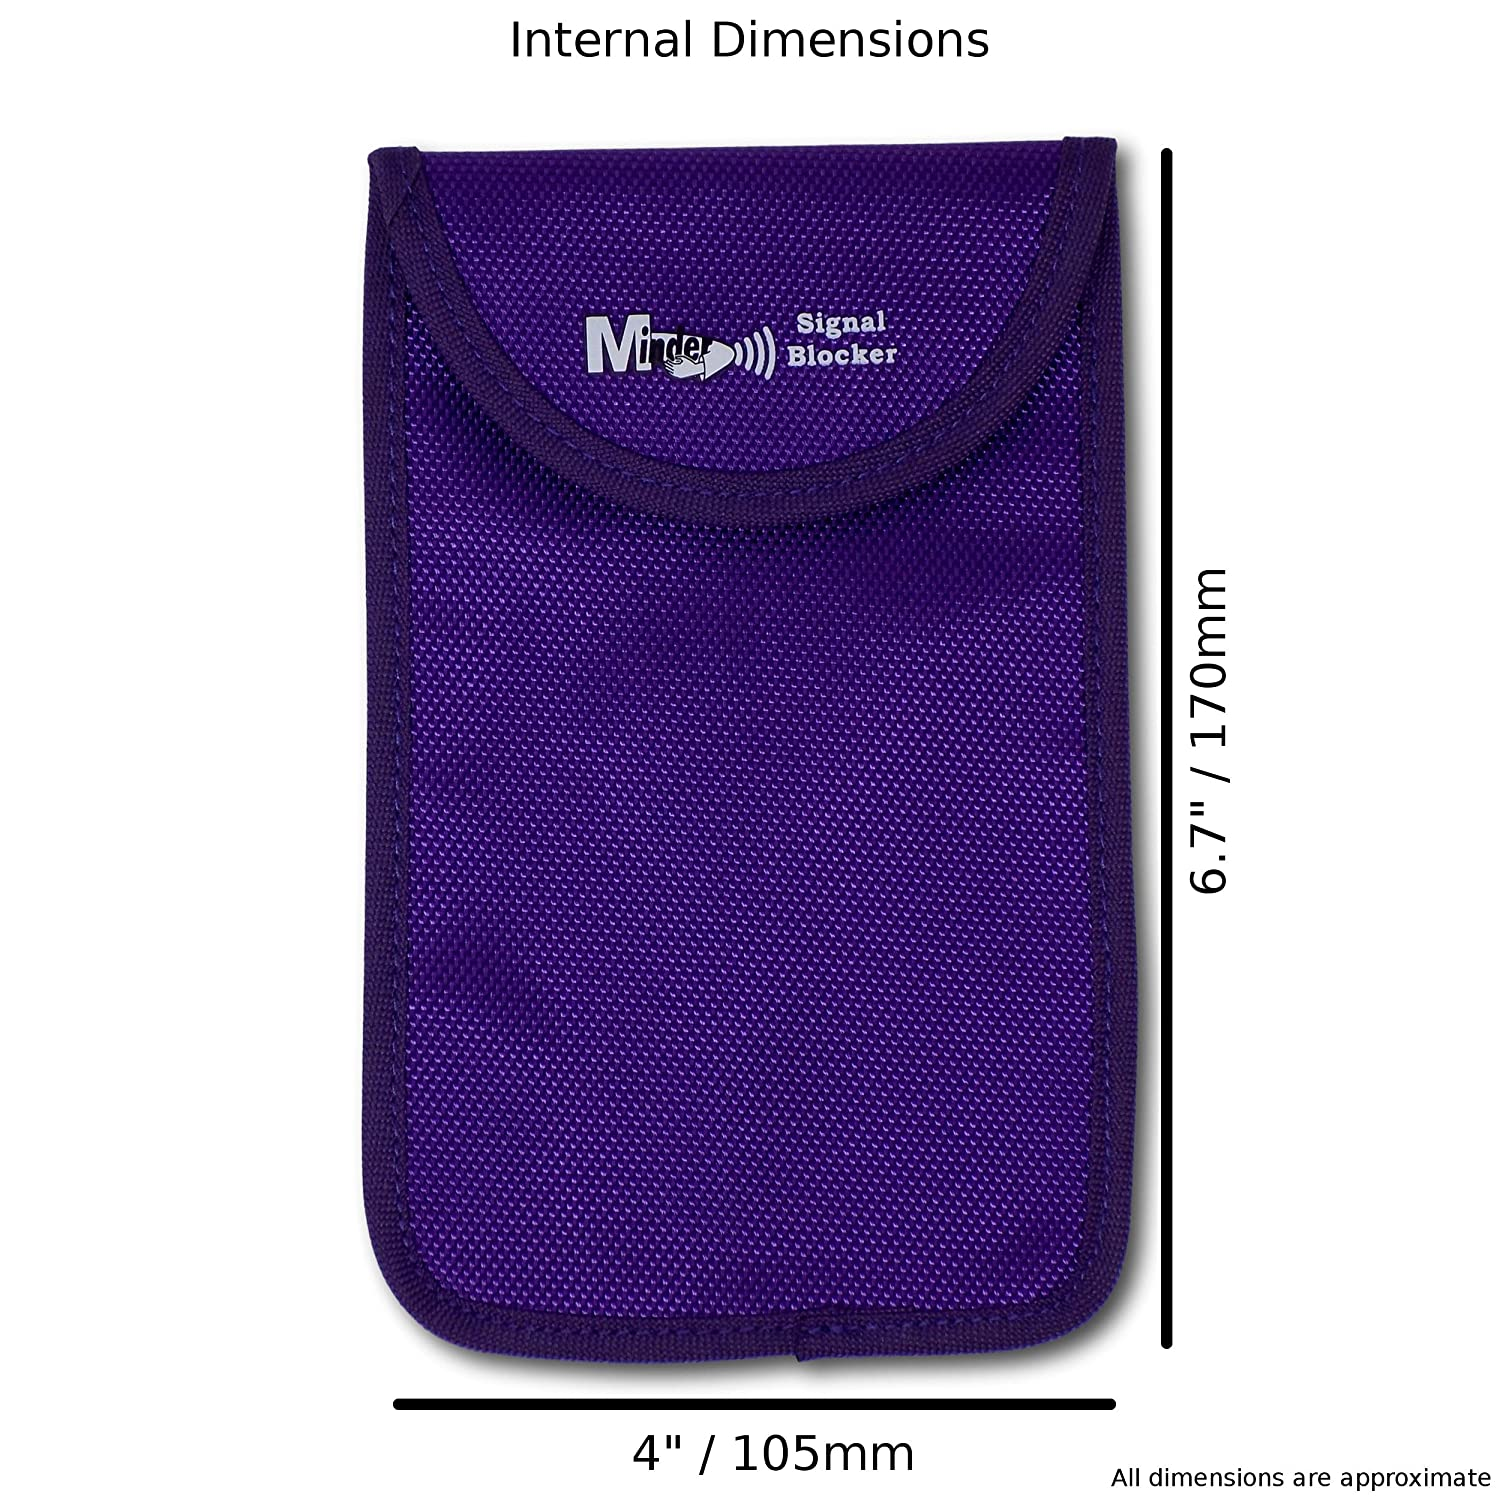 Minder Signal Blocker Faraday Bag Protection Security for WIFI//GSM//LTE//NFC//RFID Mini Purple Signal Jamming Case with RFID Blocking Pouch for Keyless Entry//Start Car Keys and Mobile Phones